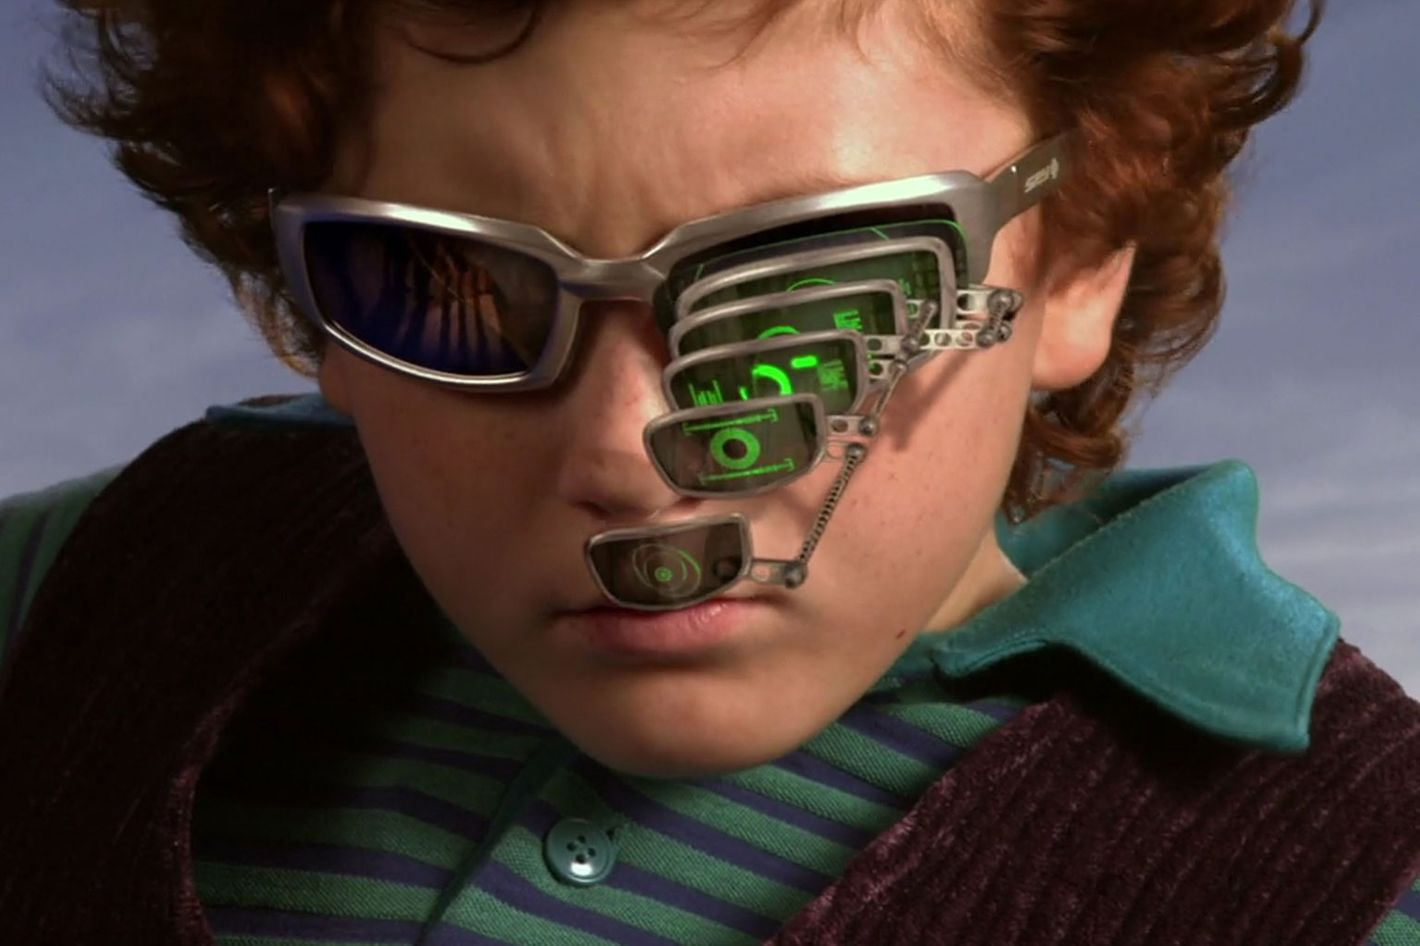 31d64284d8 Spy Kids Zoom-Glasses Meme Gets Popular on Reddit